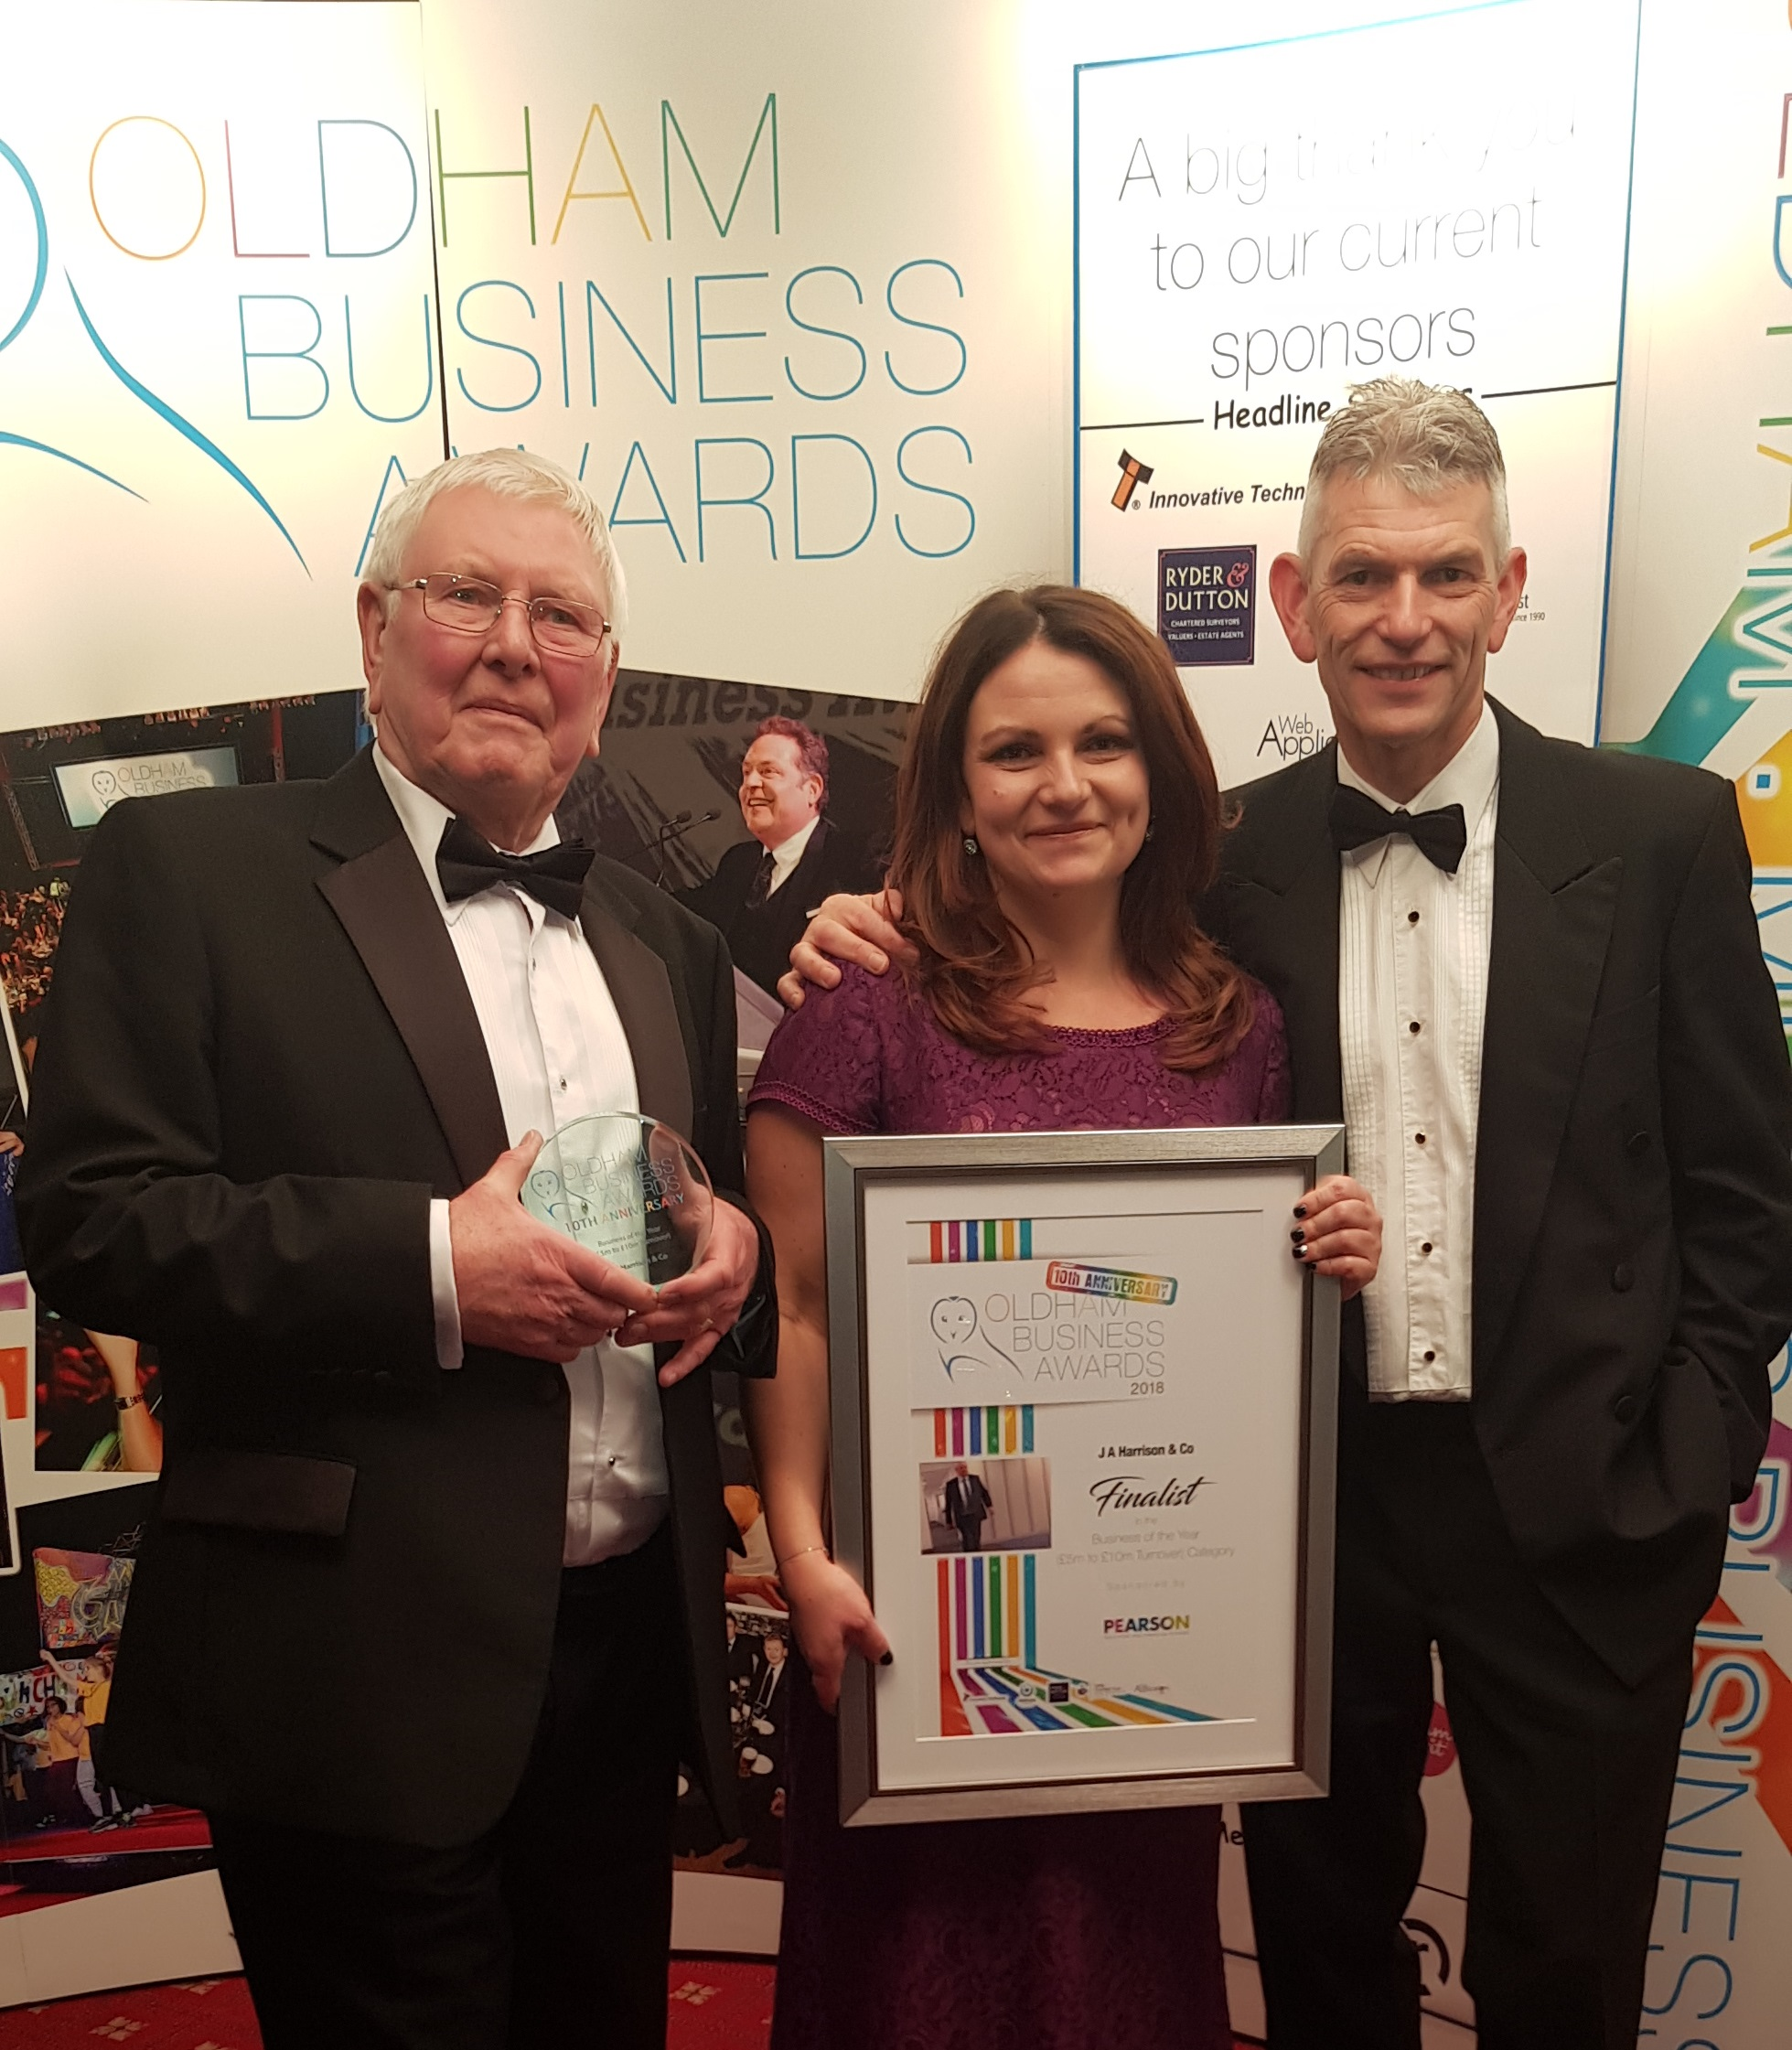 JA Harrison & Co win business of the year at Oldham Business Awards